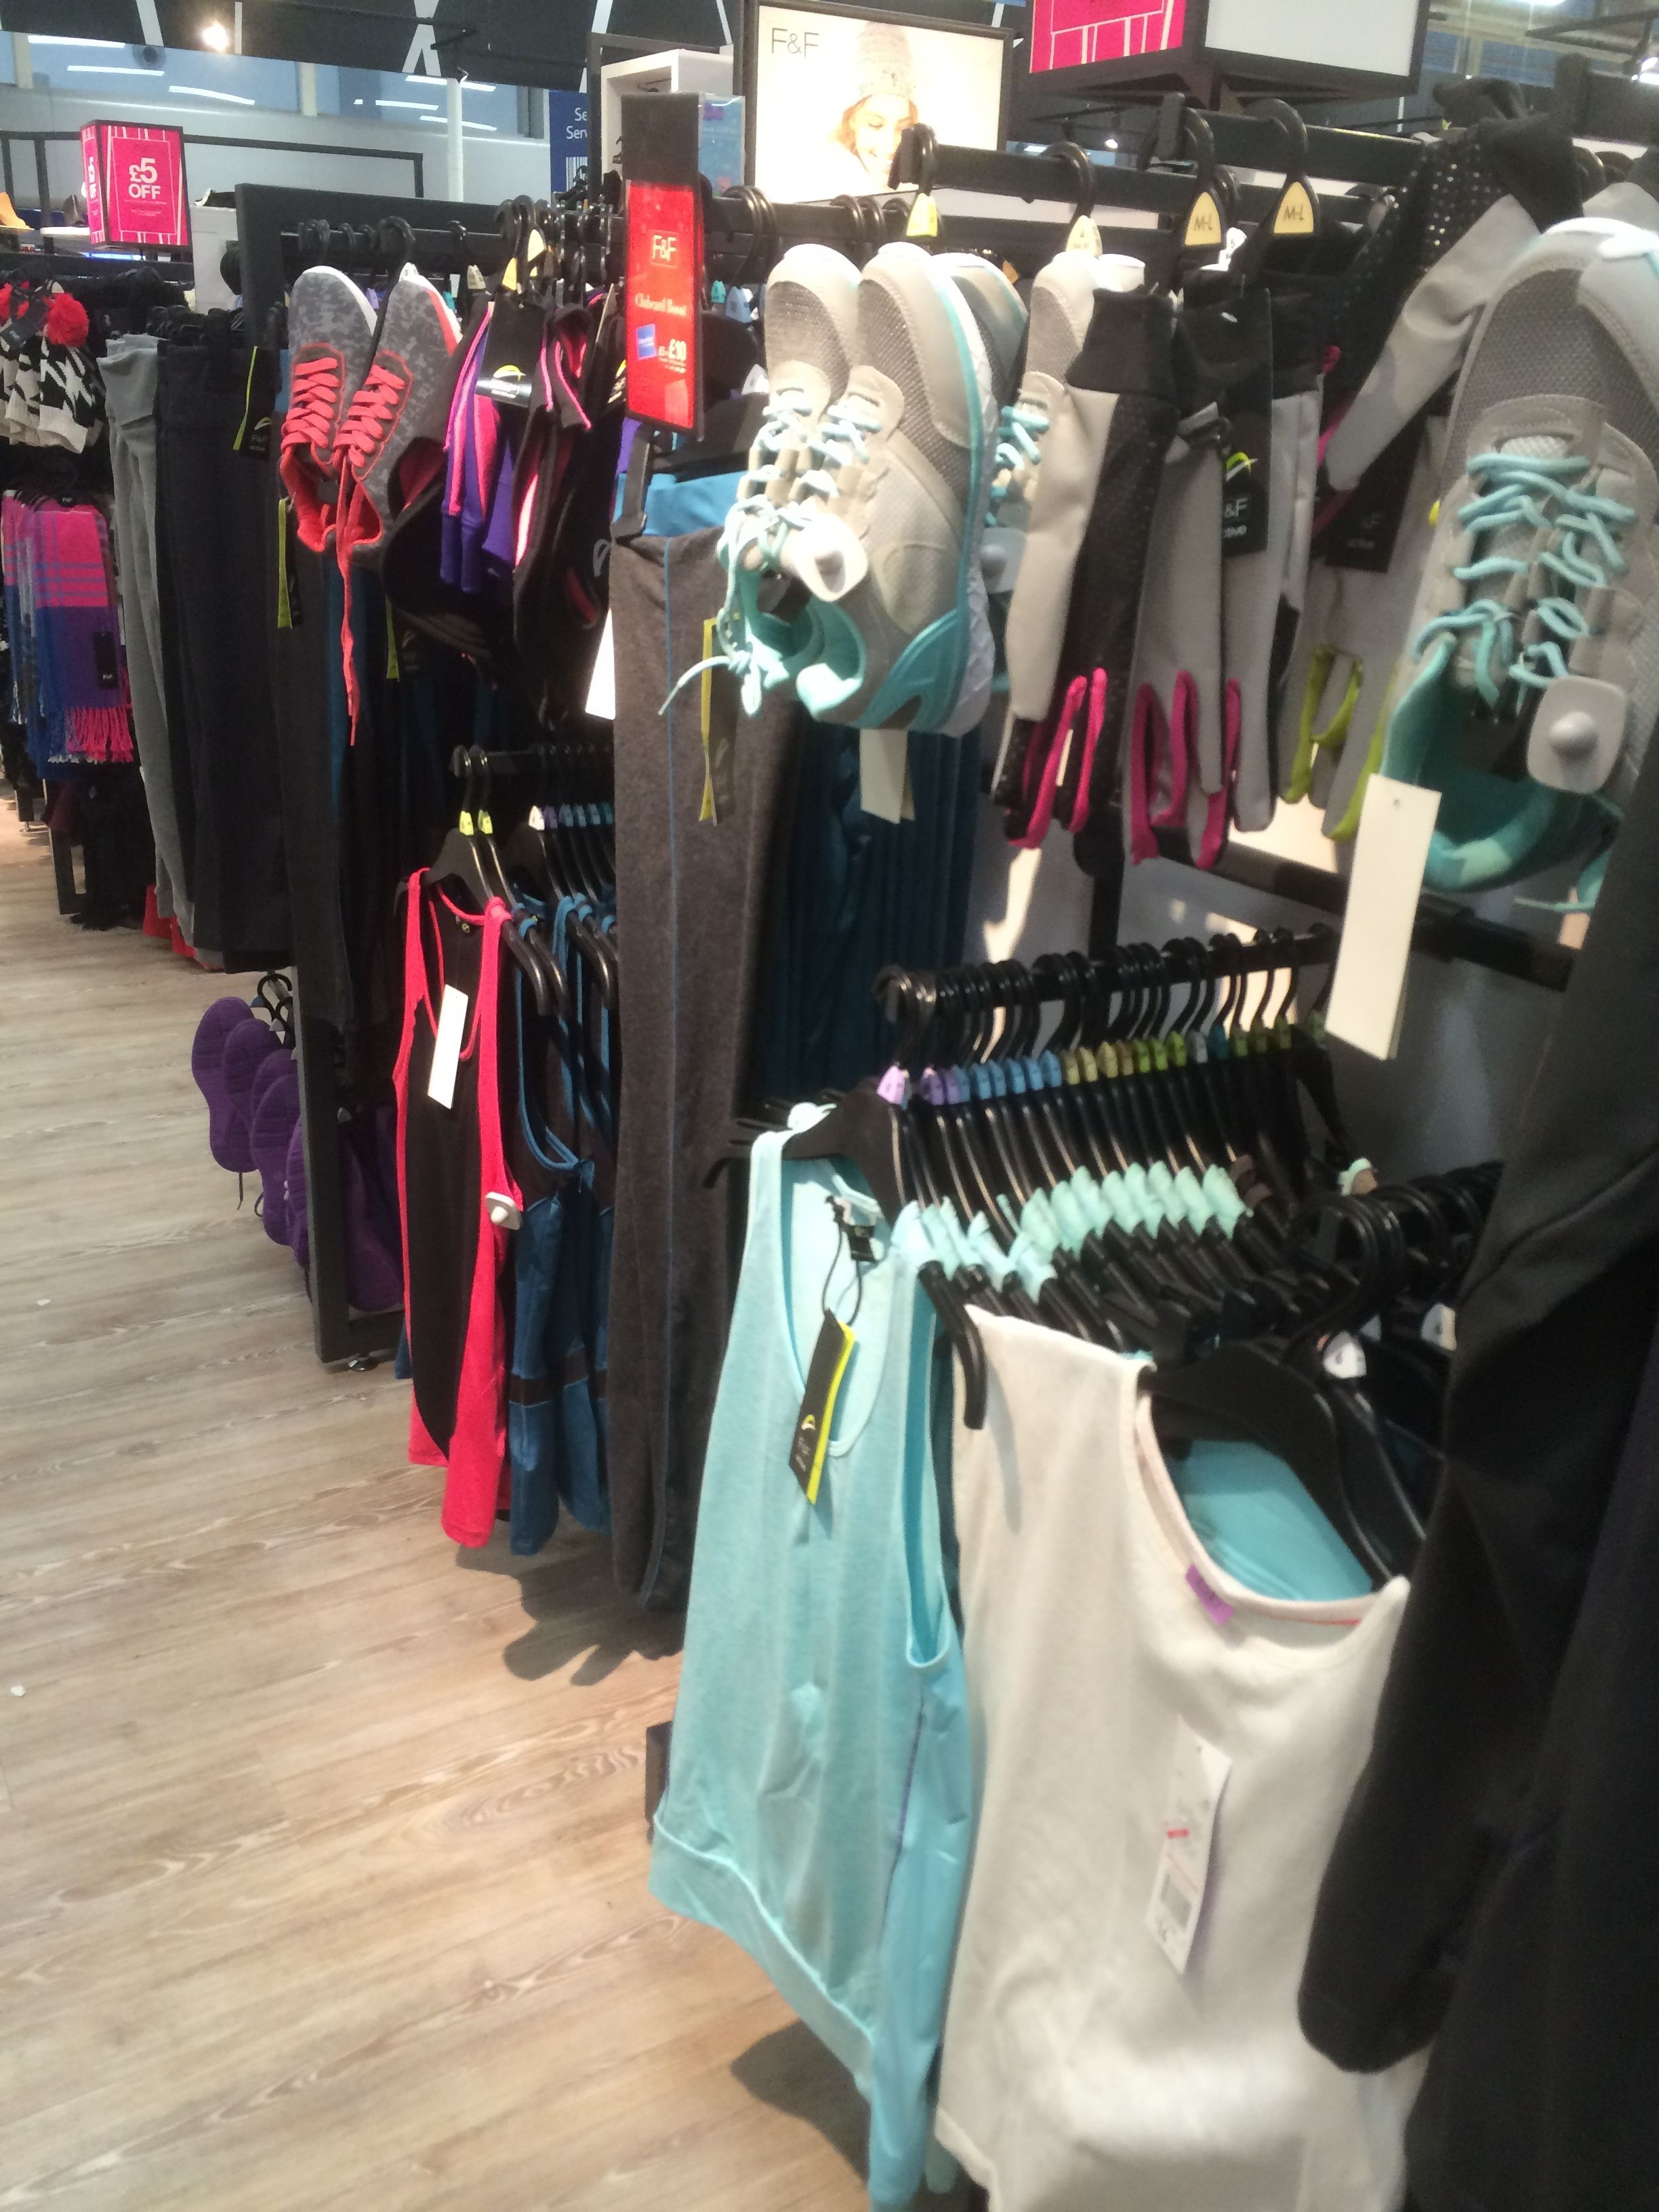 fc7e5aece4e3 Tesco - F F - Fitness - Running - Clothing - Layout - Landscape - Visual  Merchandising - www.clearretailgroup.eu